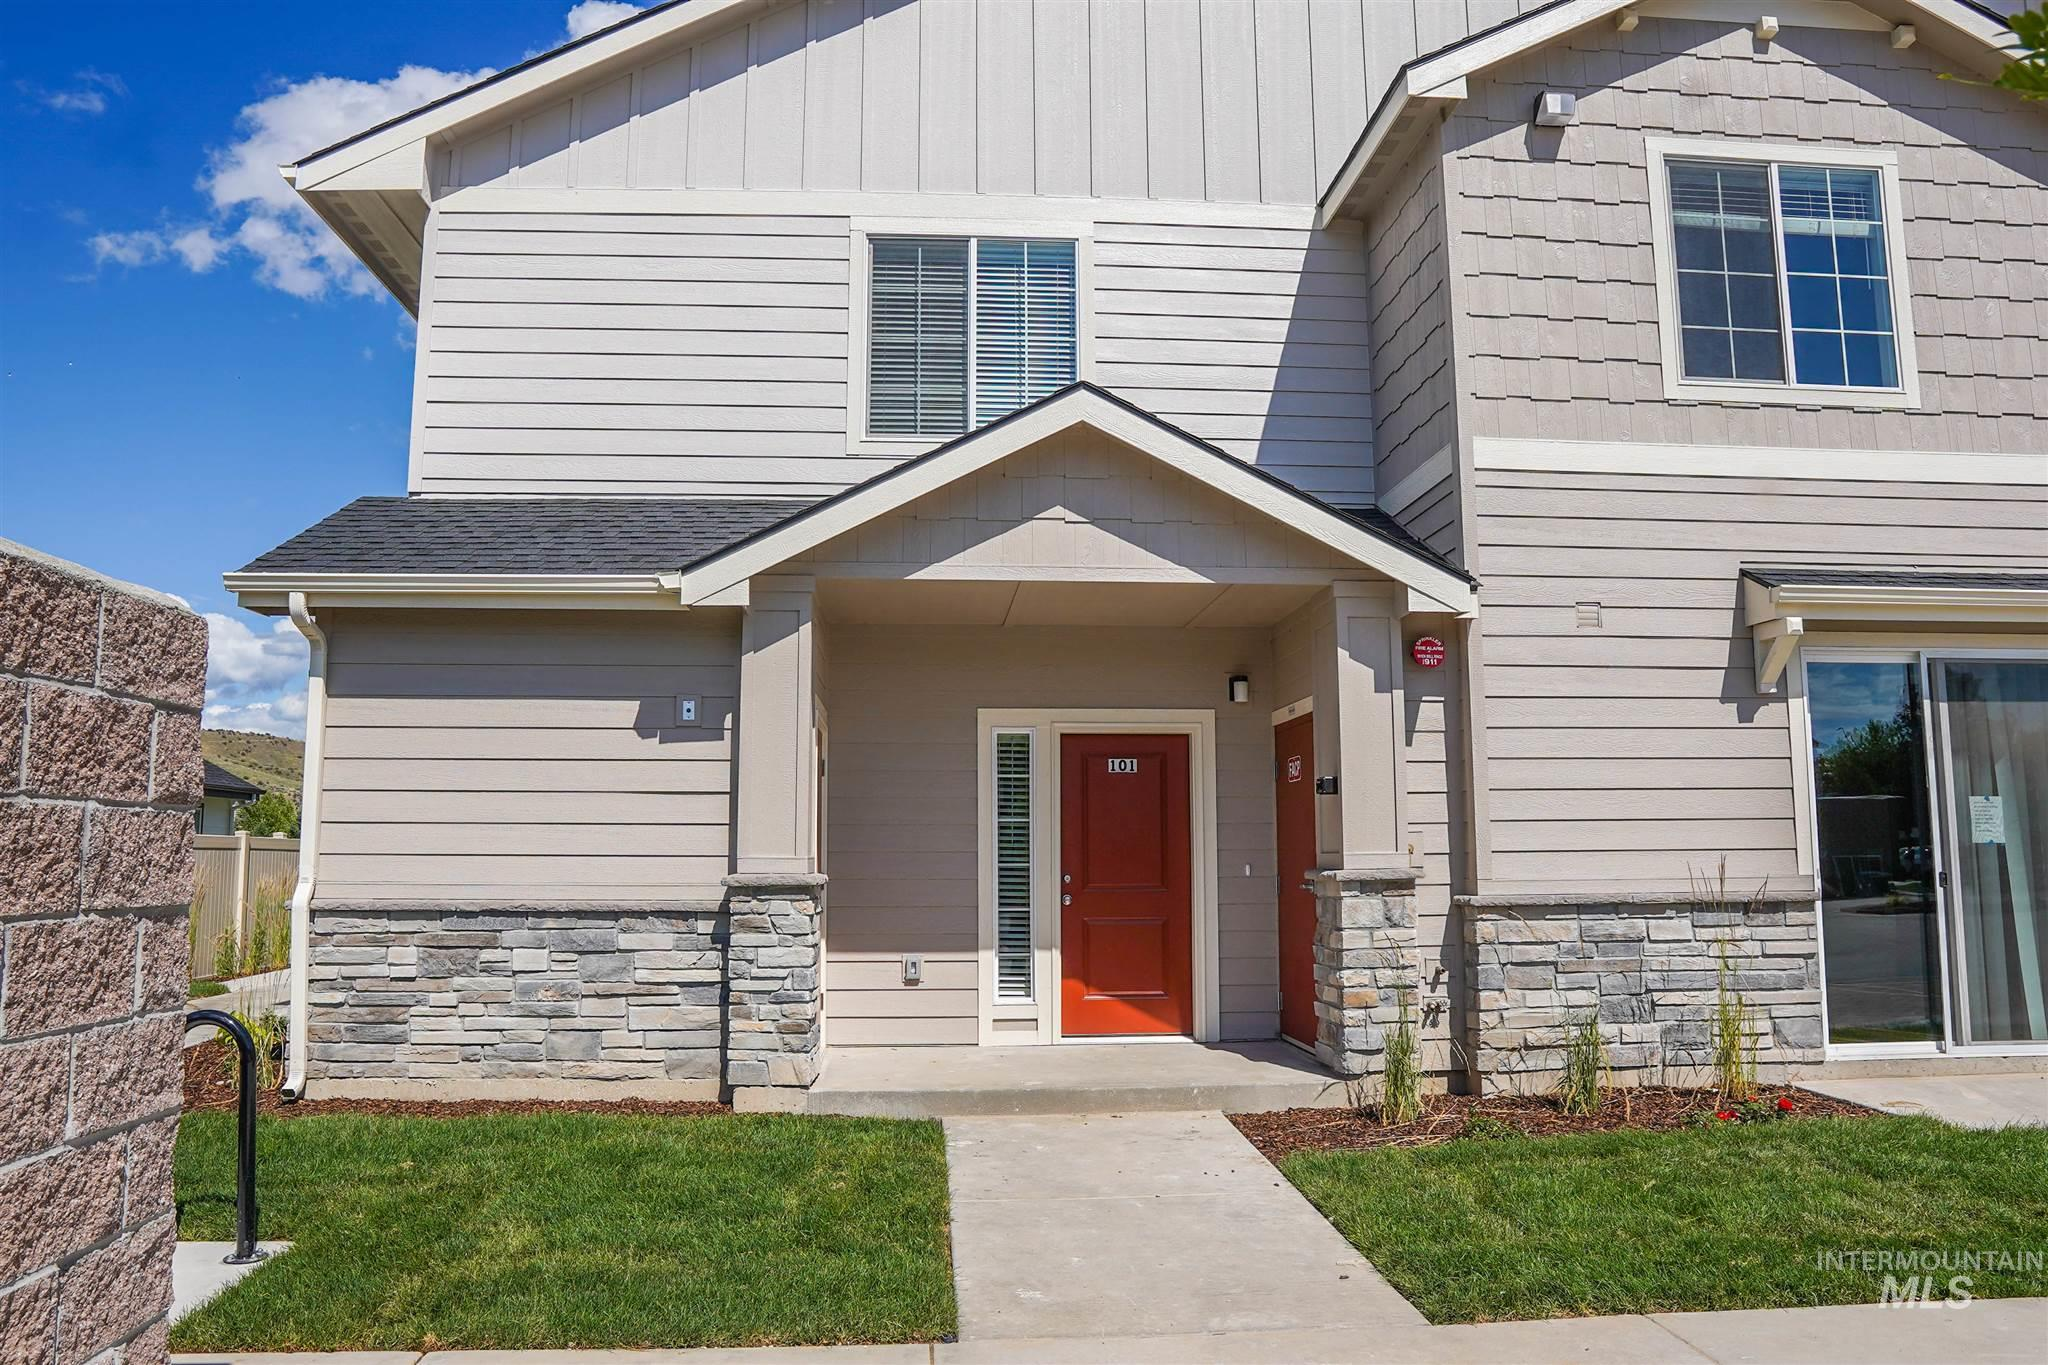 7340 N Lucy Rose Ln, Boise, Idaho 83714, 3 Bedrooms, 3 Bathrooms, Rental For Rent, Price $1,450, 98771231